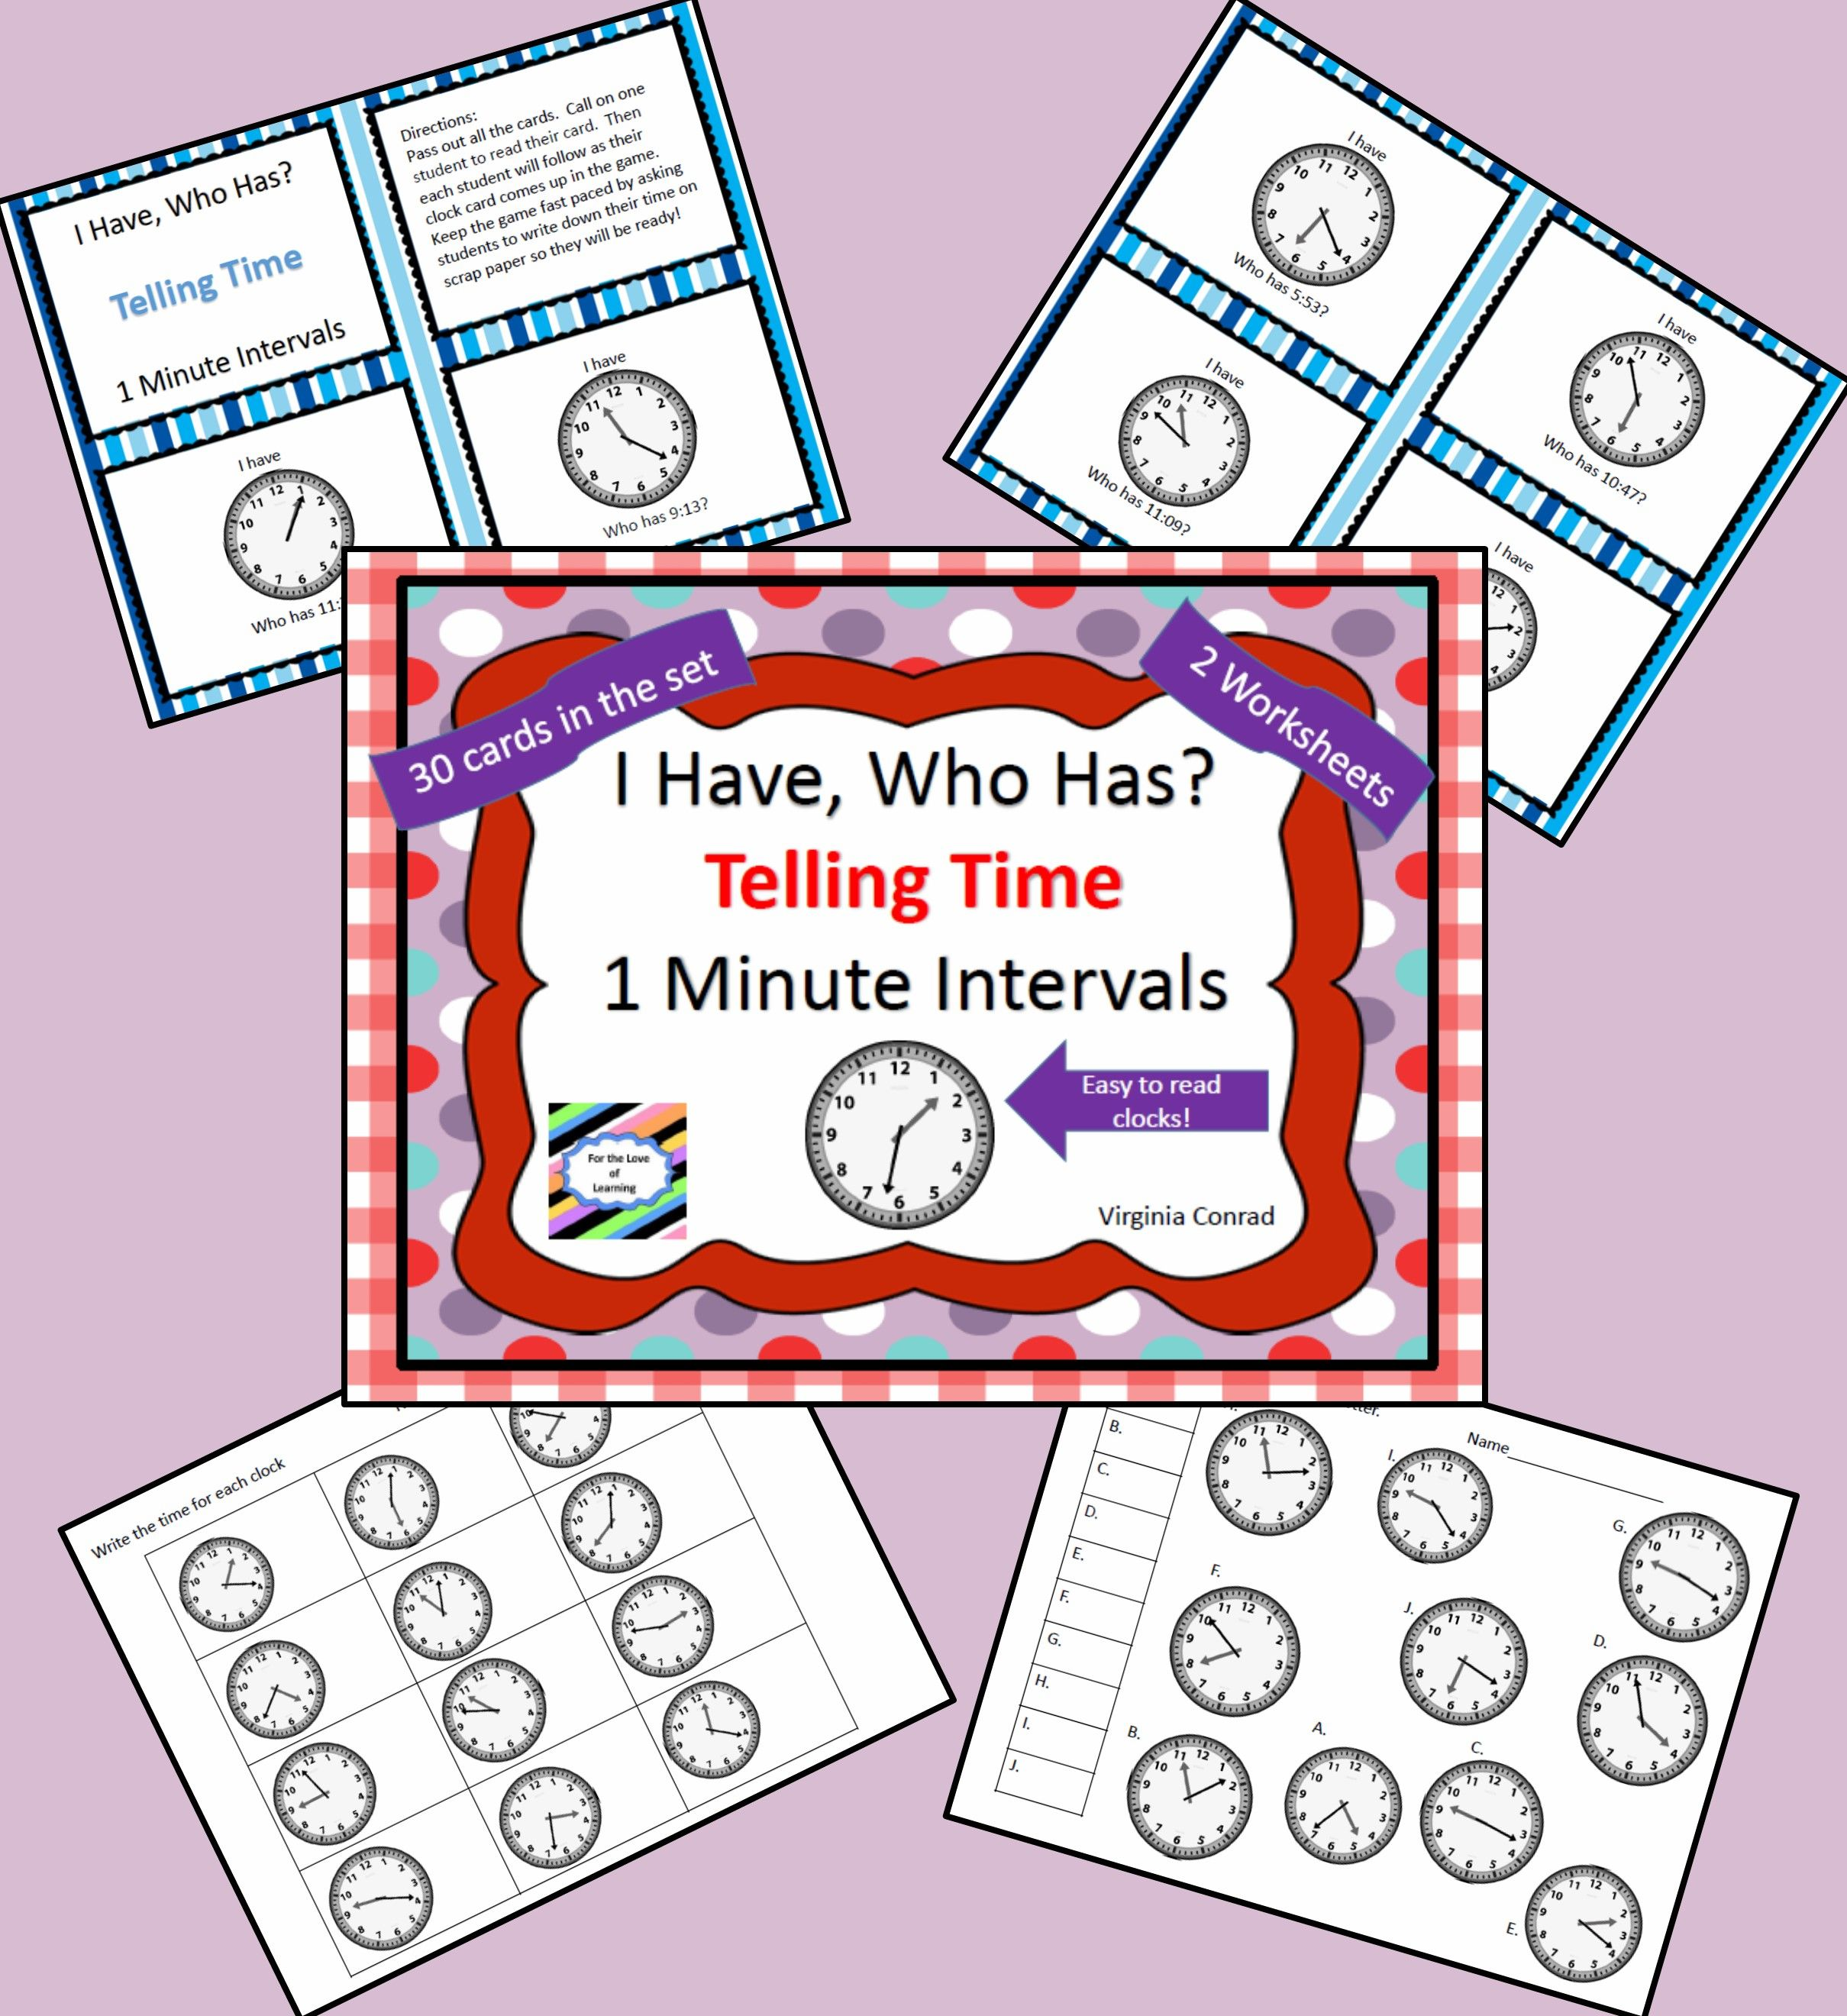 I Have Who Has Telling Time Game 1 Minute Intervals